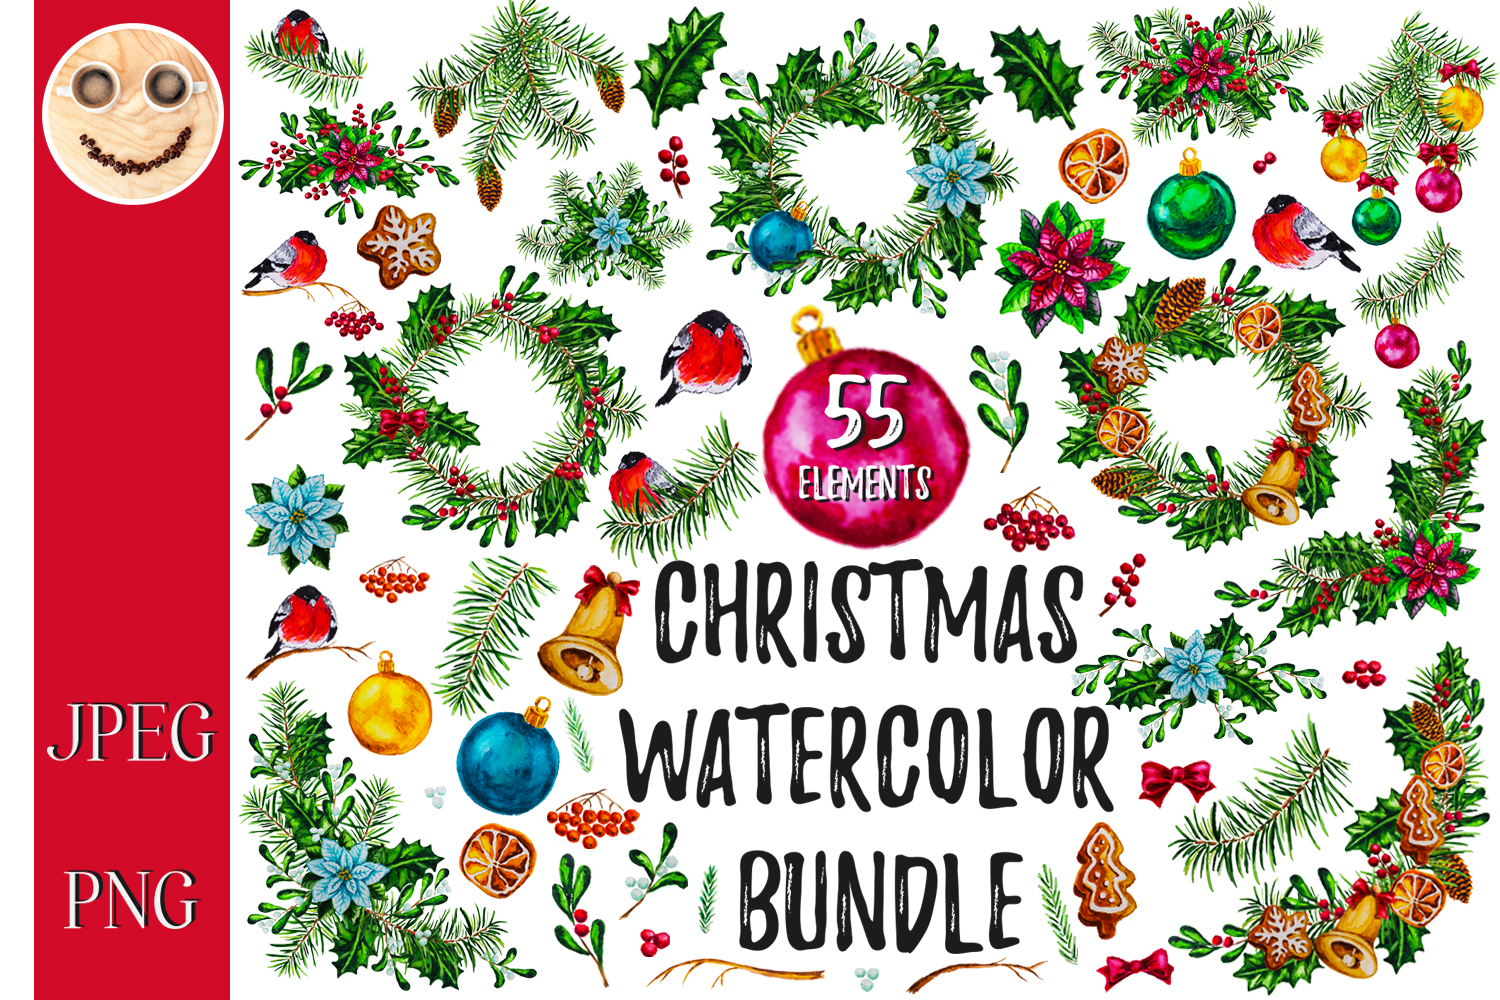 Christmas watercolor bundle example image 1